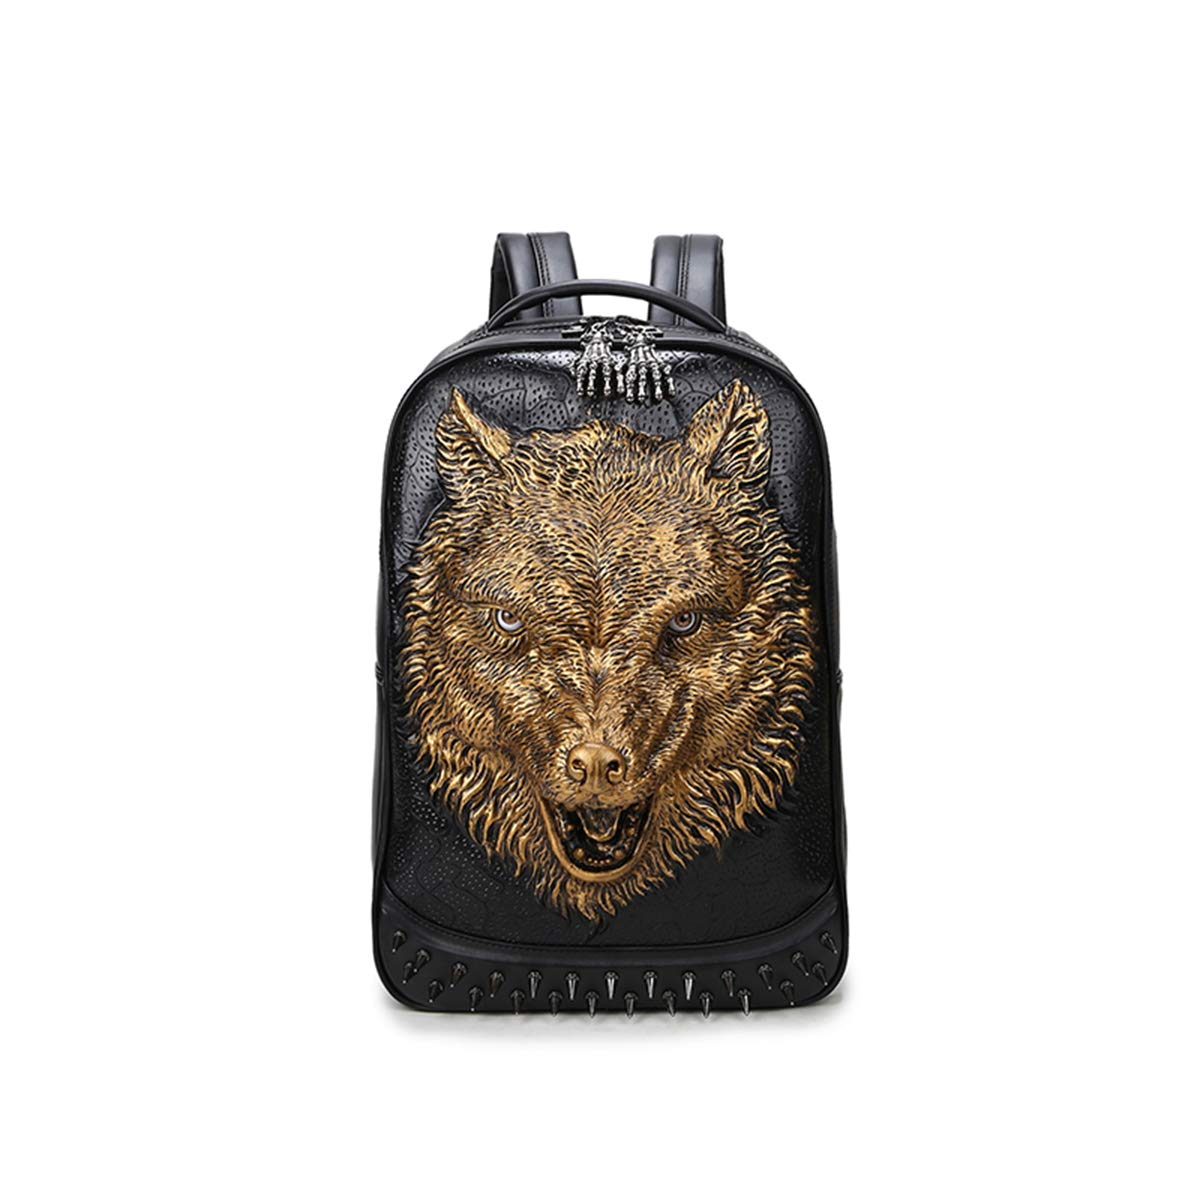 CHUO YUE 3D Stereo Backpack PU Animal Pattern Backpack Lining Ghost Hand Backpack Shoulder Bag Student Campus Trend,Gold